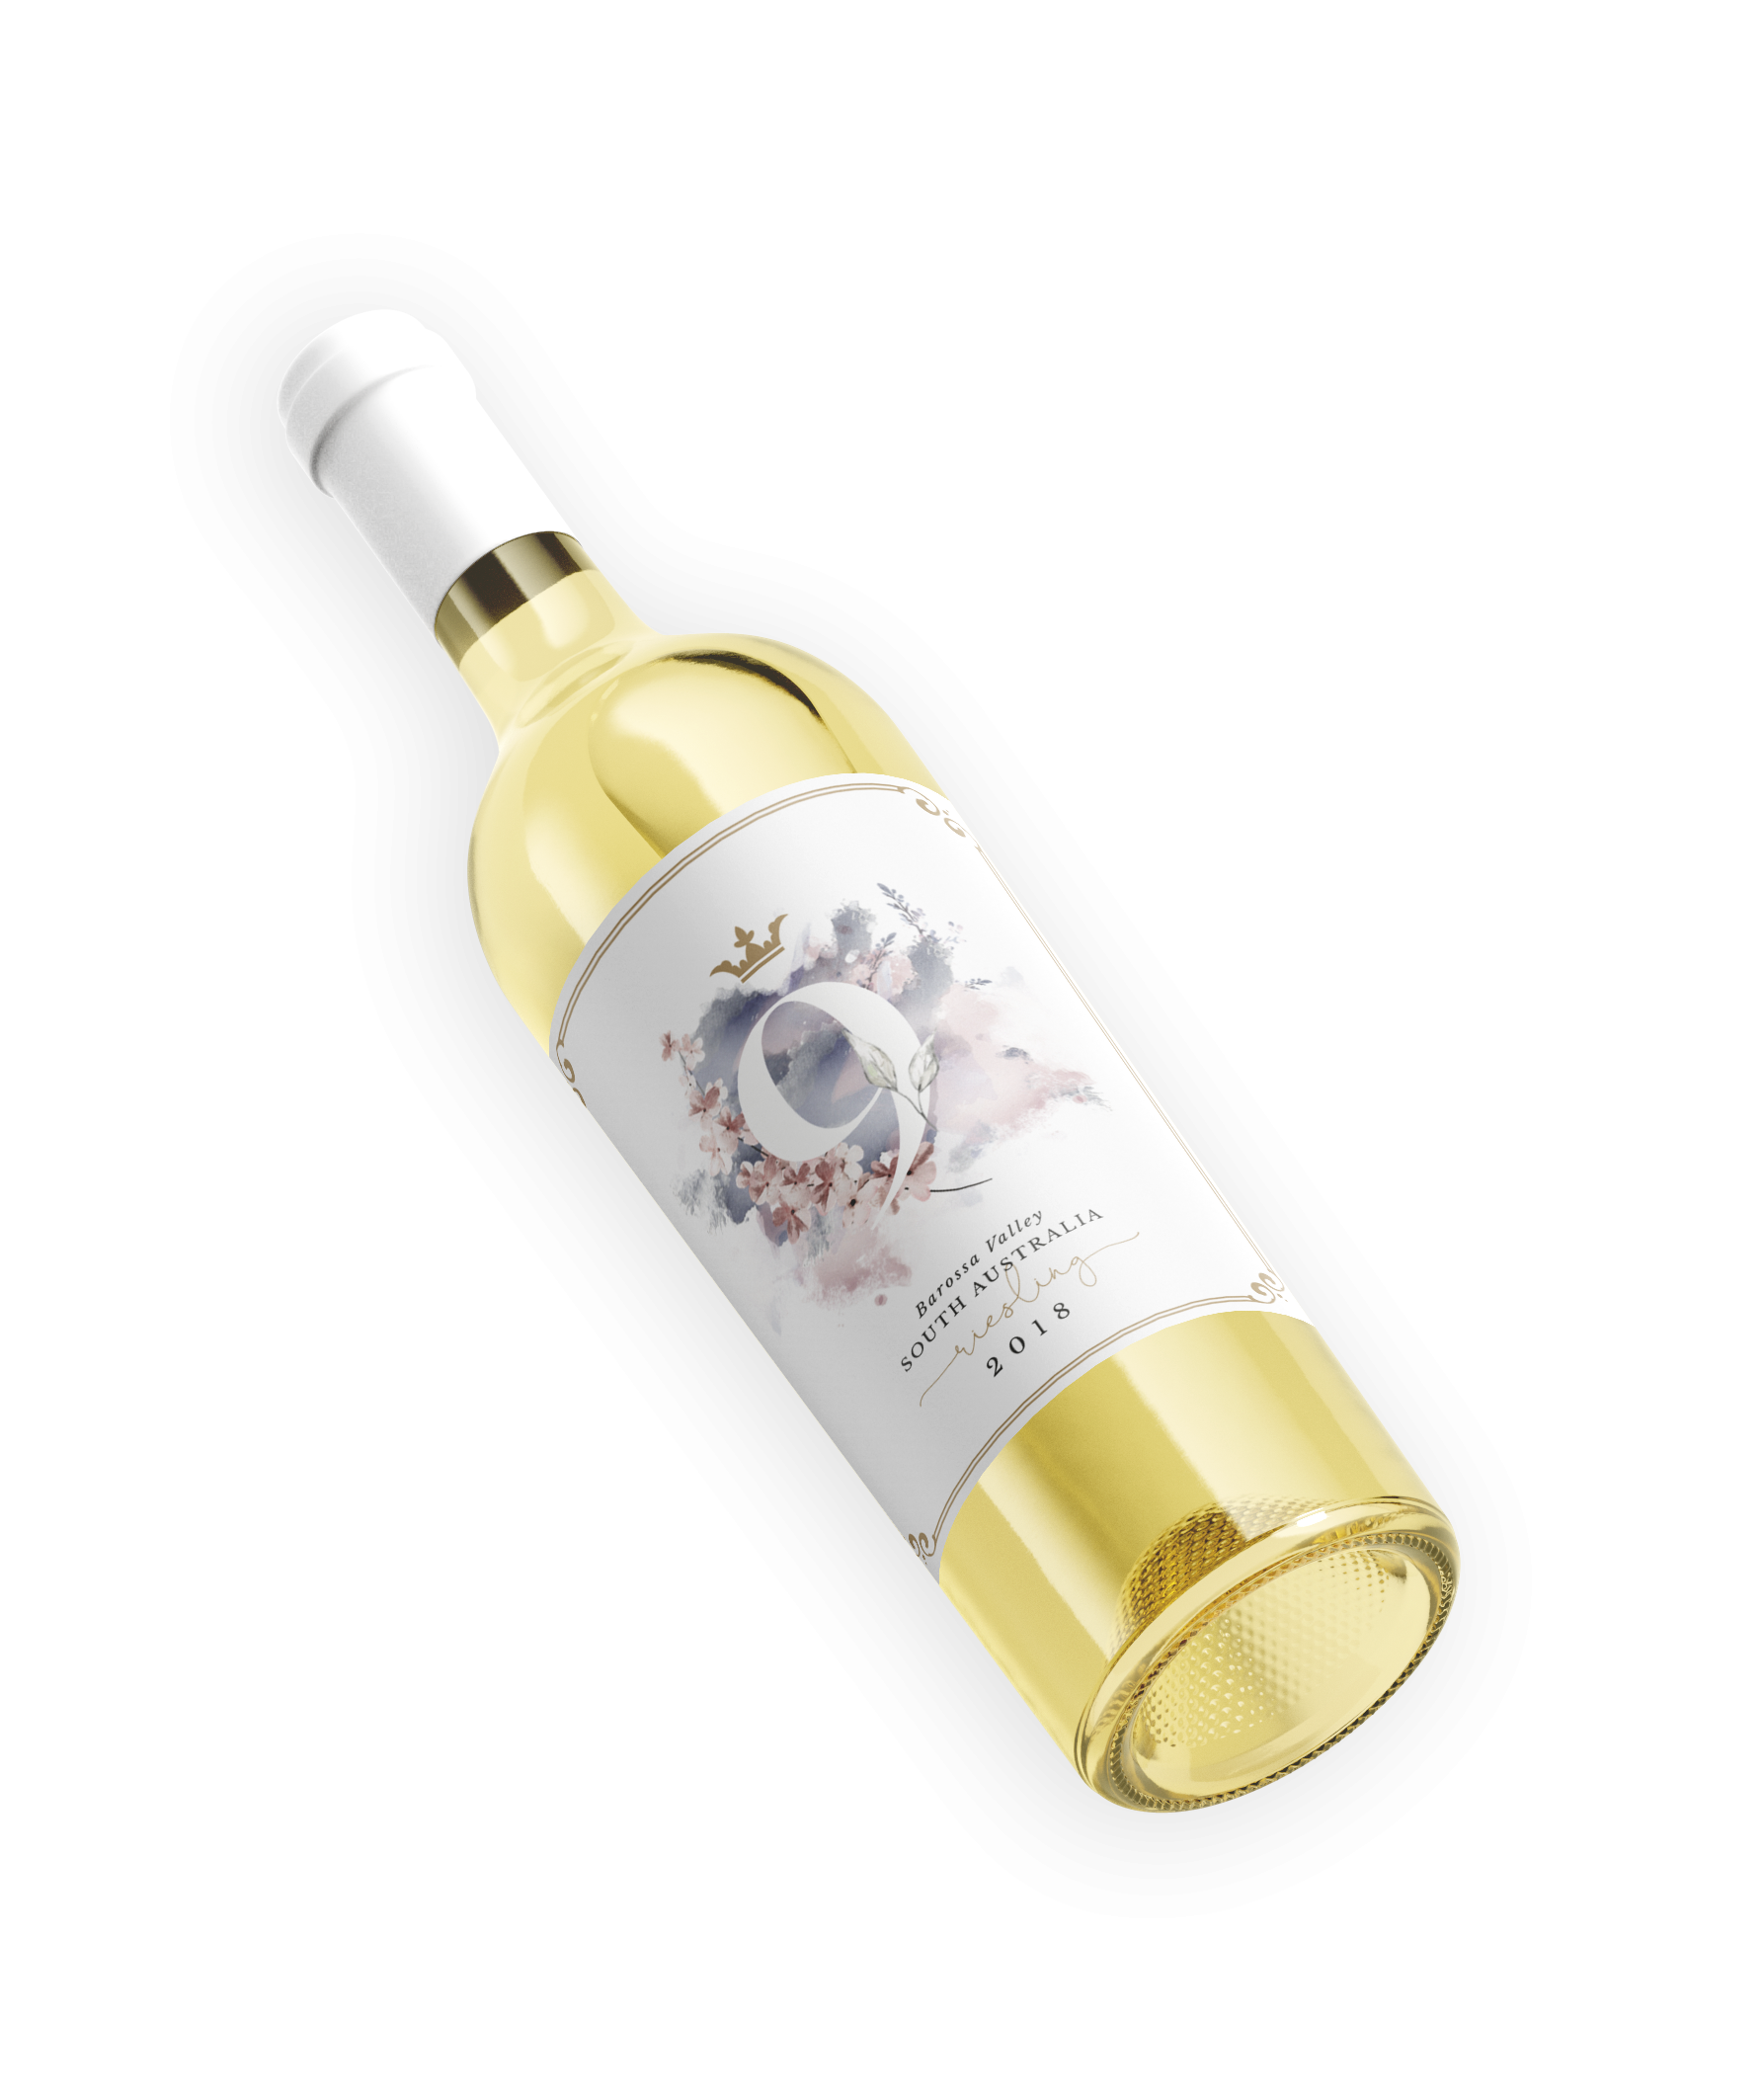 V-Wines_White_Wine_Bottle_Mockup_1